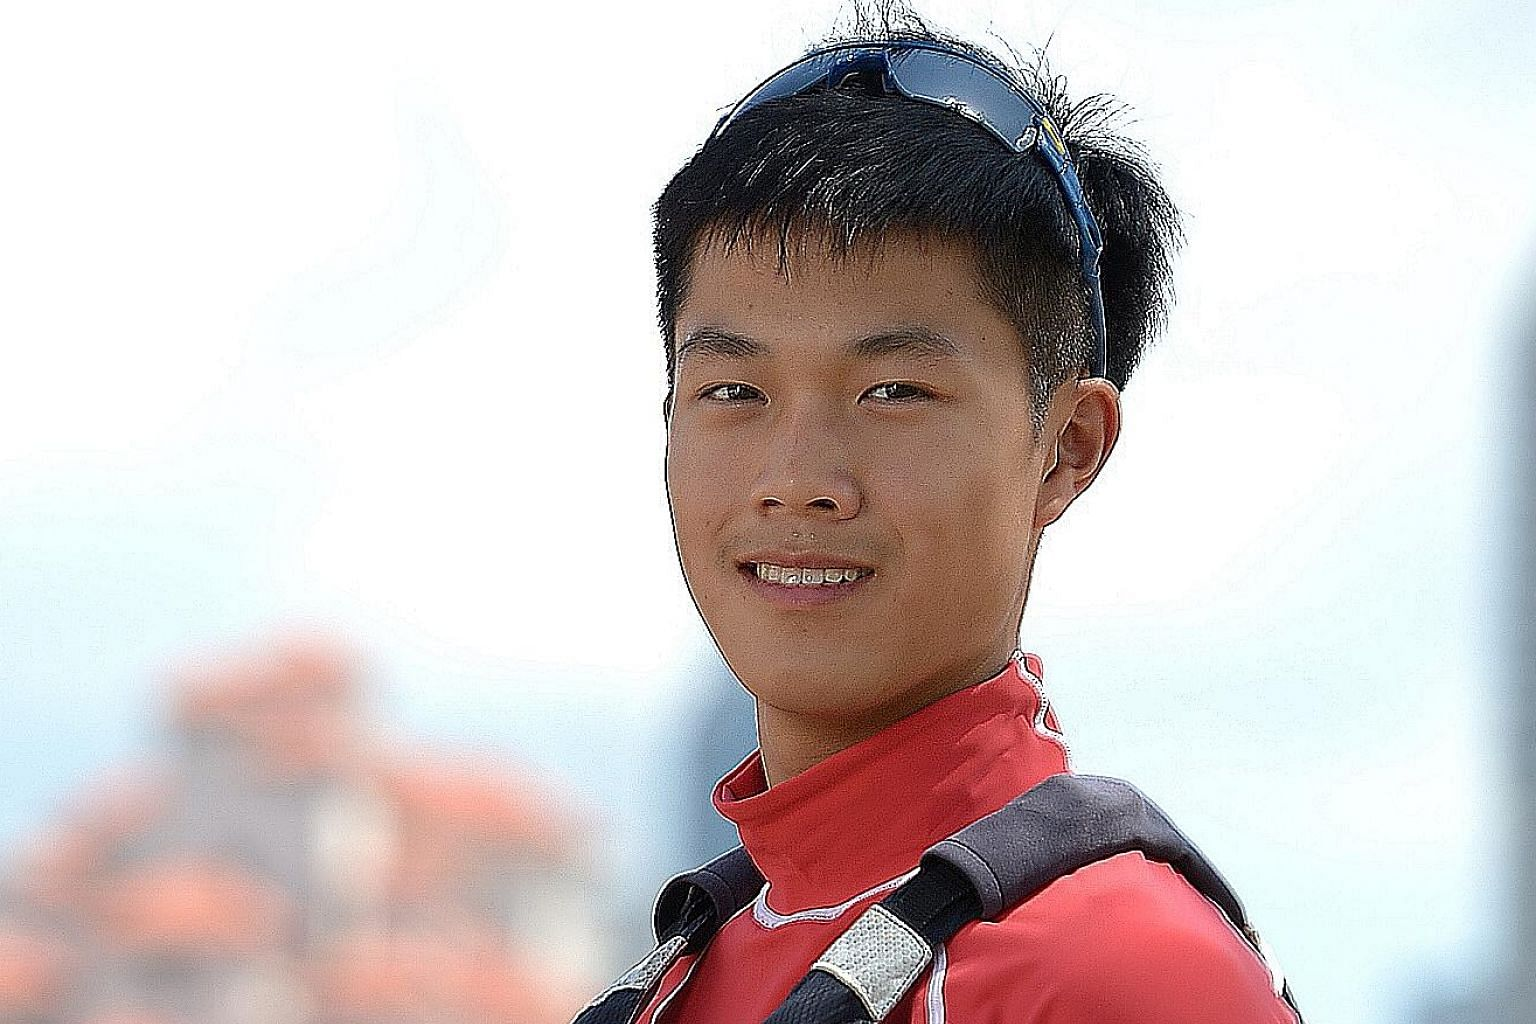 Singapore's Bernie Chin won the Under-17 Laser Radial title at the World Championships in Kingston, Canada on Thursday.